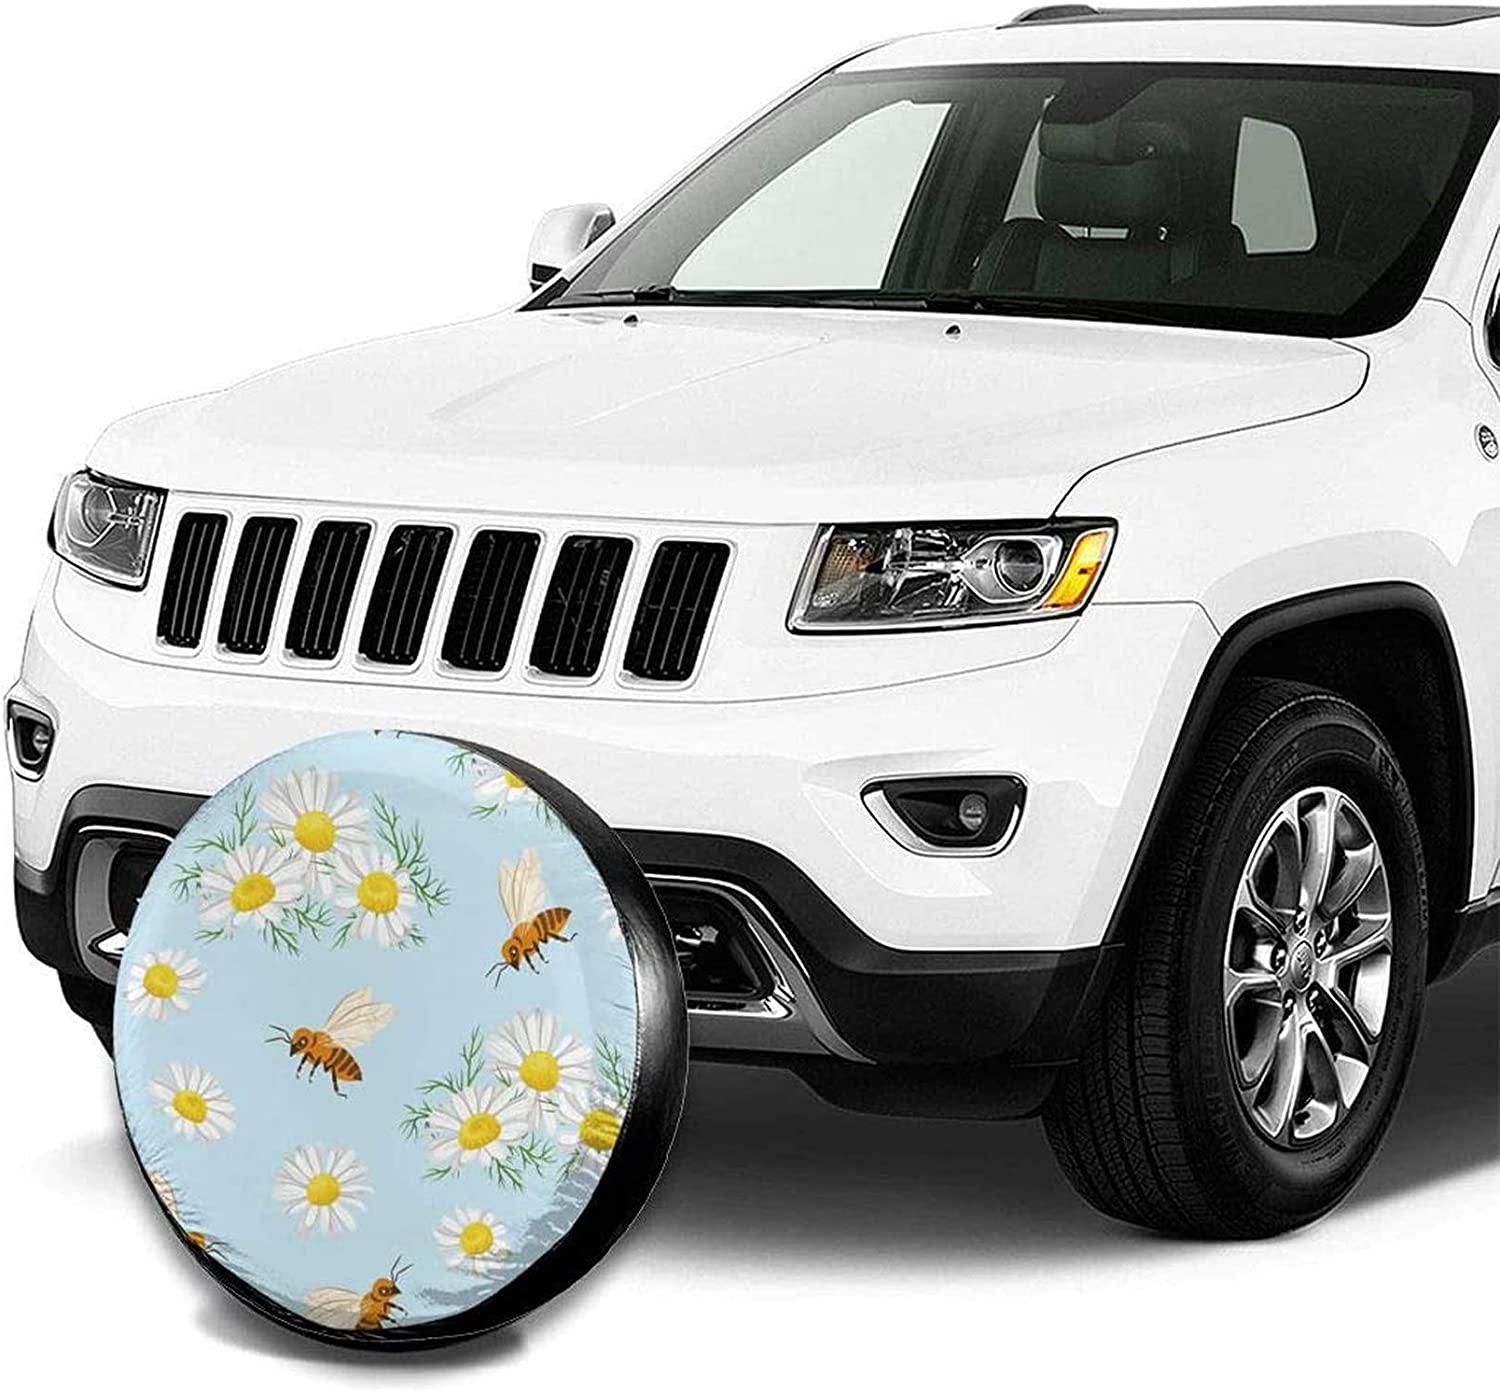 my cat Flying Bees Daisy Honey Chamomile Flowers Personalized Waterproof Sunscreen tire Cover tire Cover Truck and Many Vehicles-14inch RV SUV Suitable for Trailer